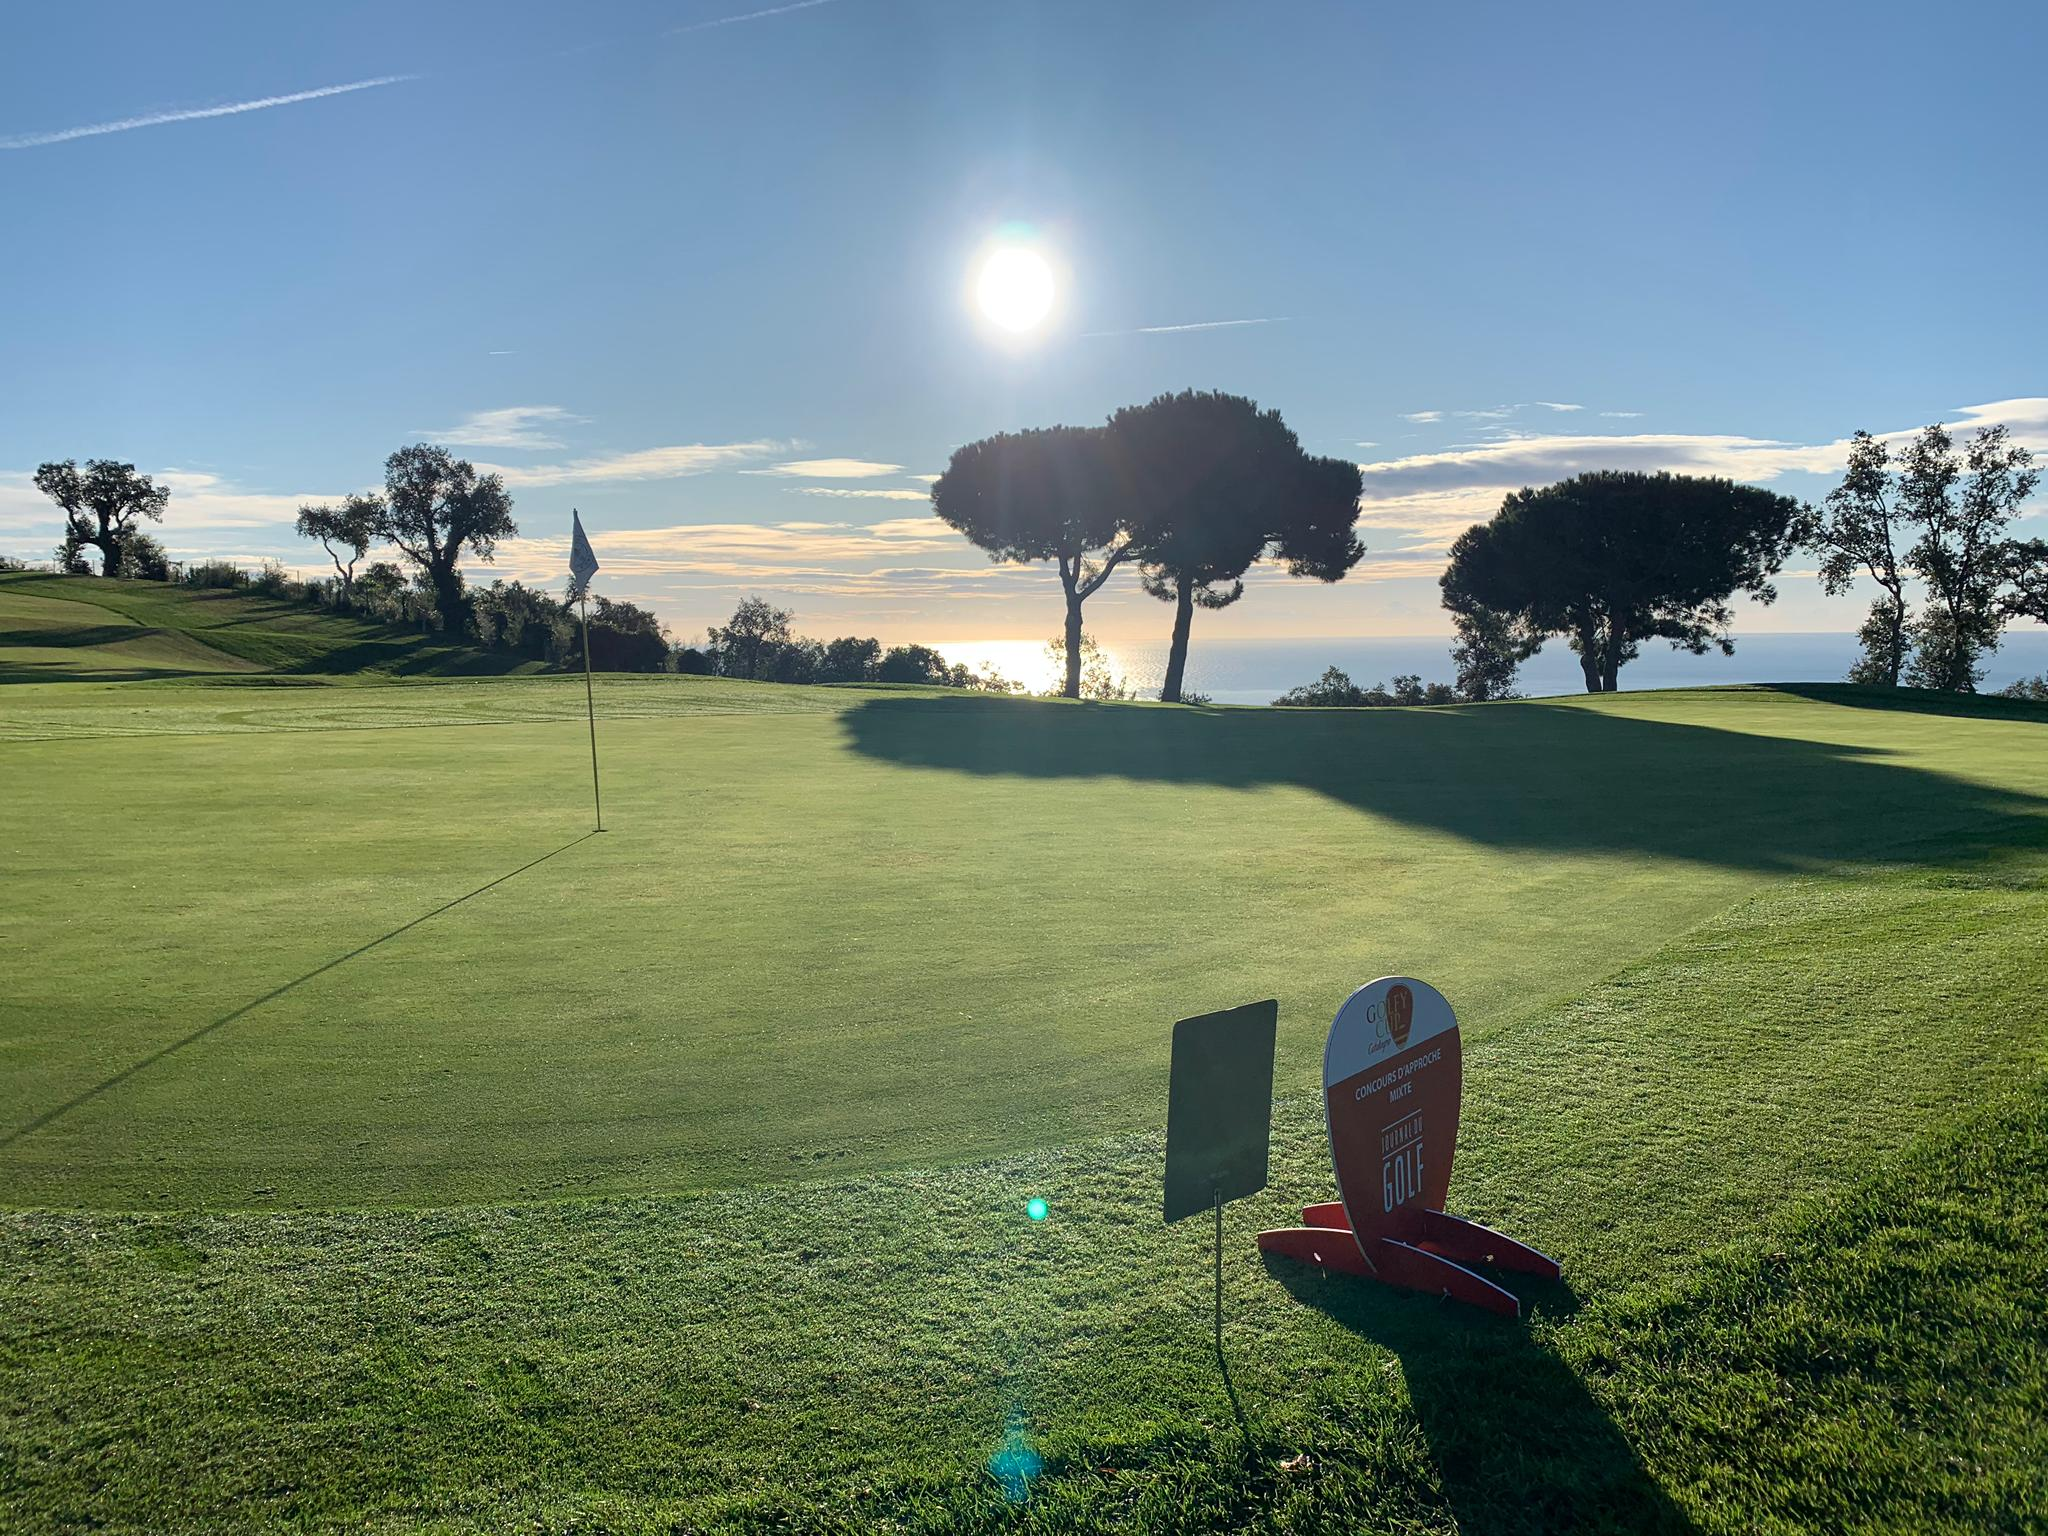 WhatsApp-Image-2019-11-07-at-09.52.00-1 Golfy Cup Catalogne 2019